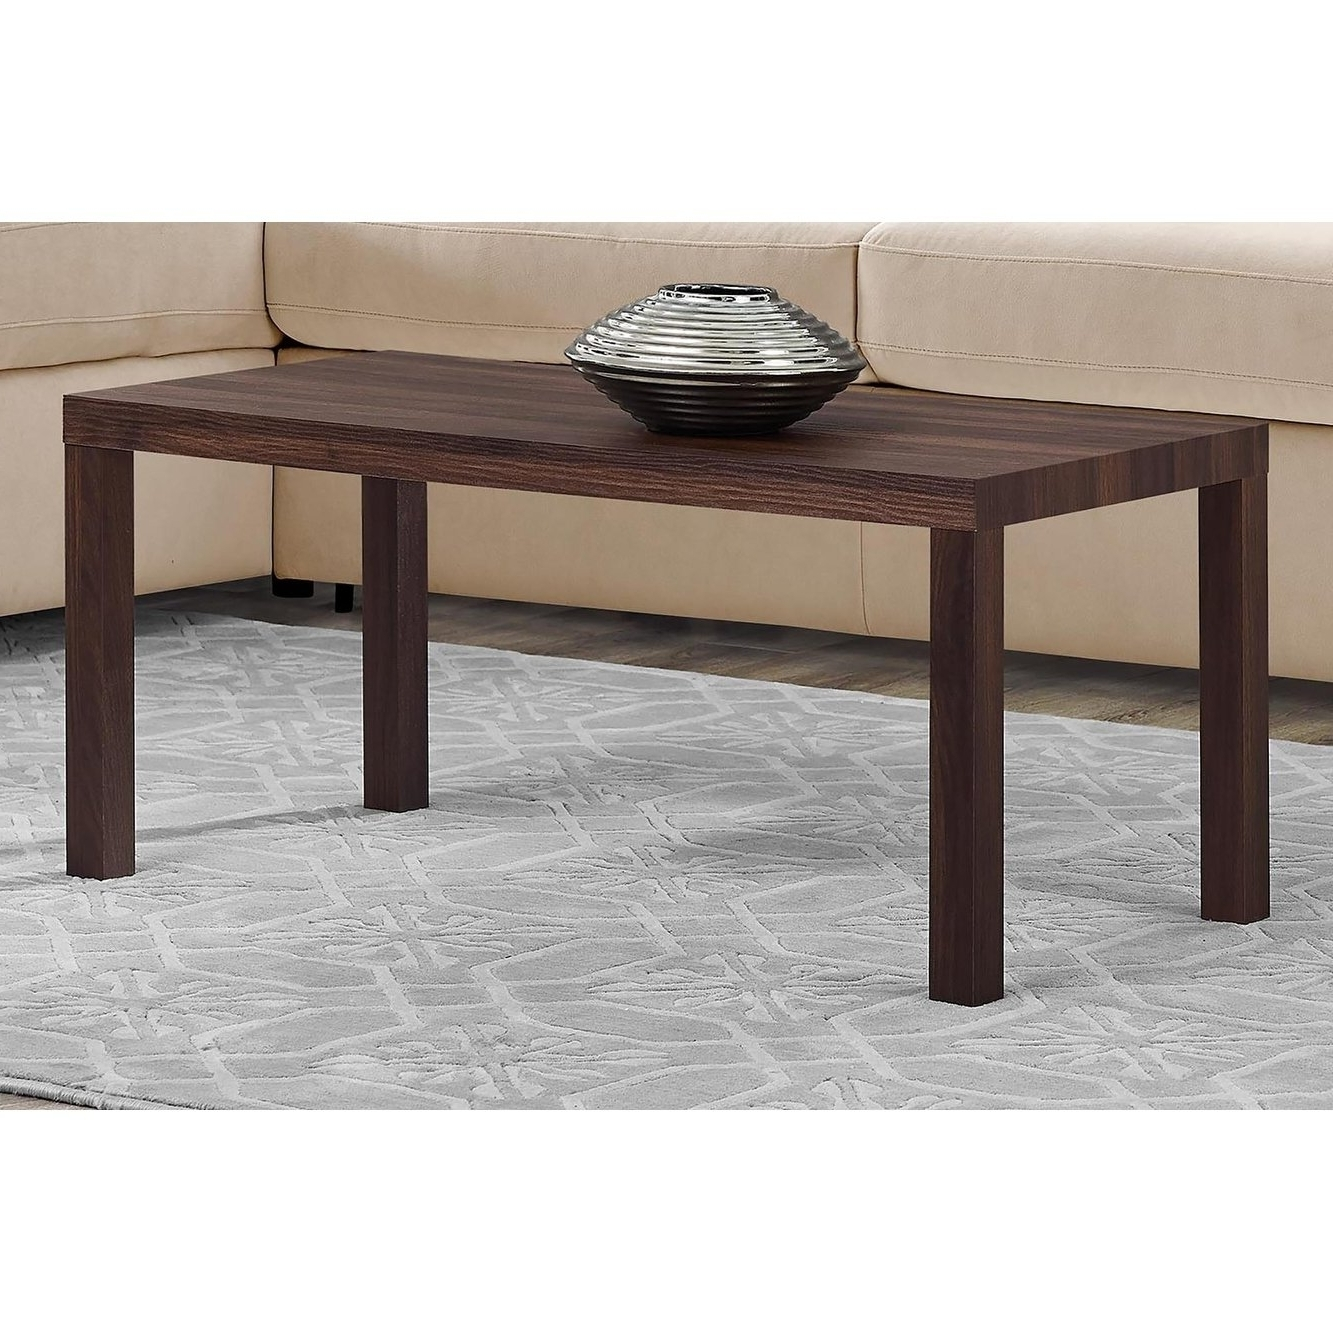 Newest Jaxon Cocktail Tables Pertaining To Shop Avenue Greene Jaxon Walnut Coffee Table – Free Shipping Today (View 3 of 20)